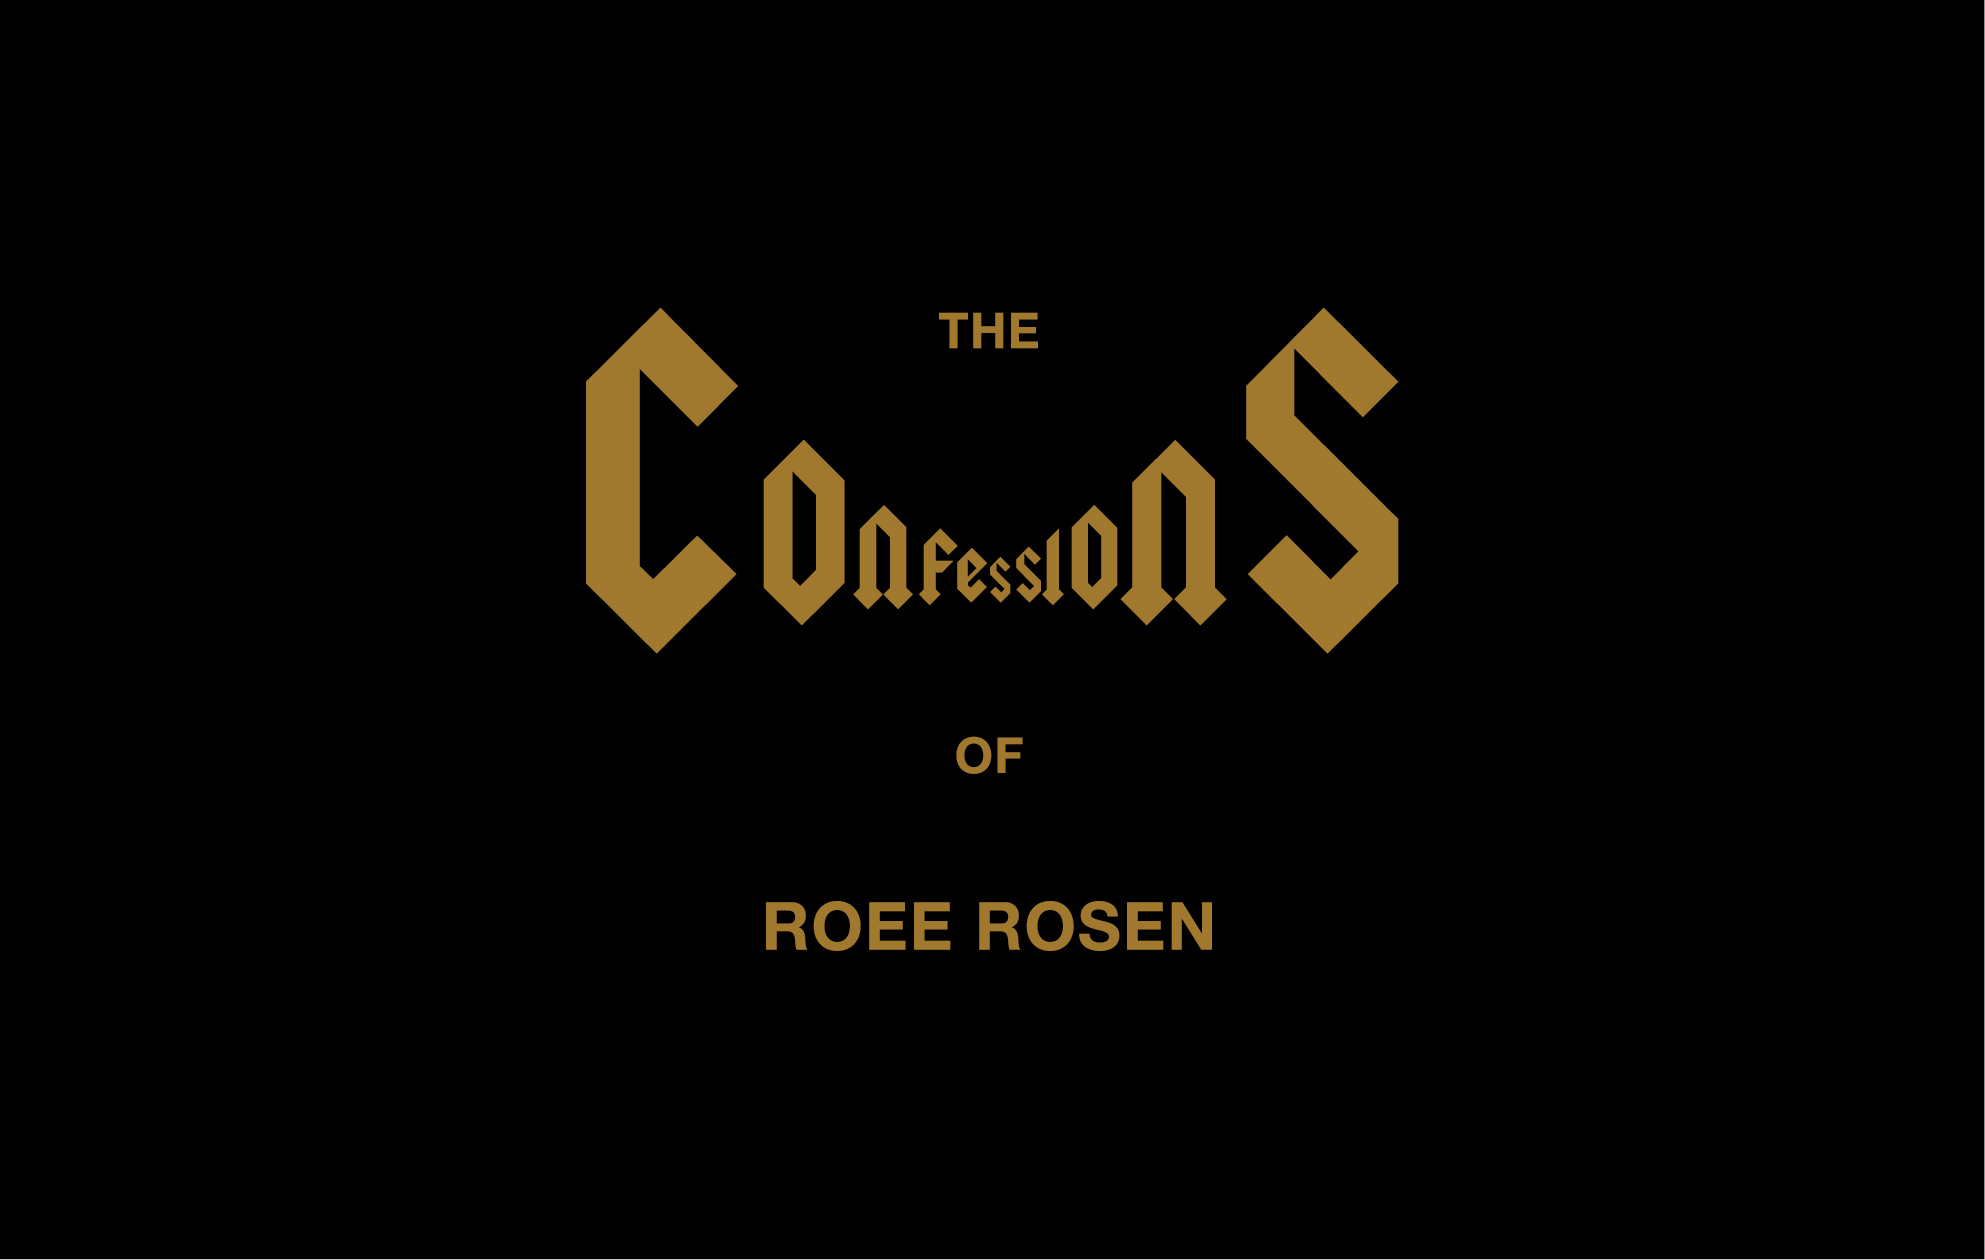 THE CONFESSION OF ROEE ROSEN